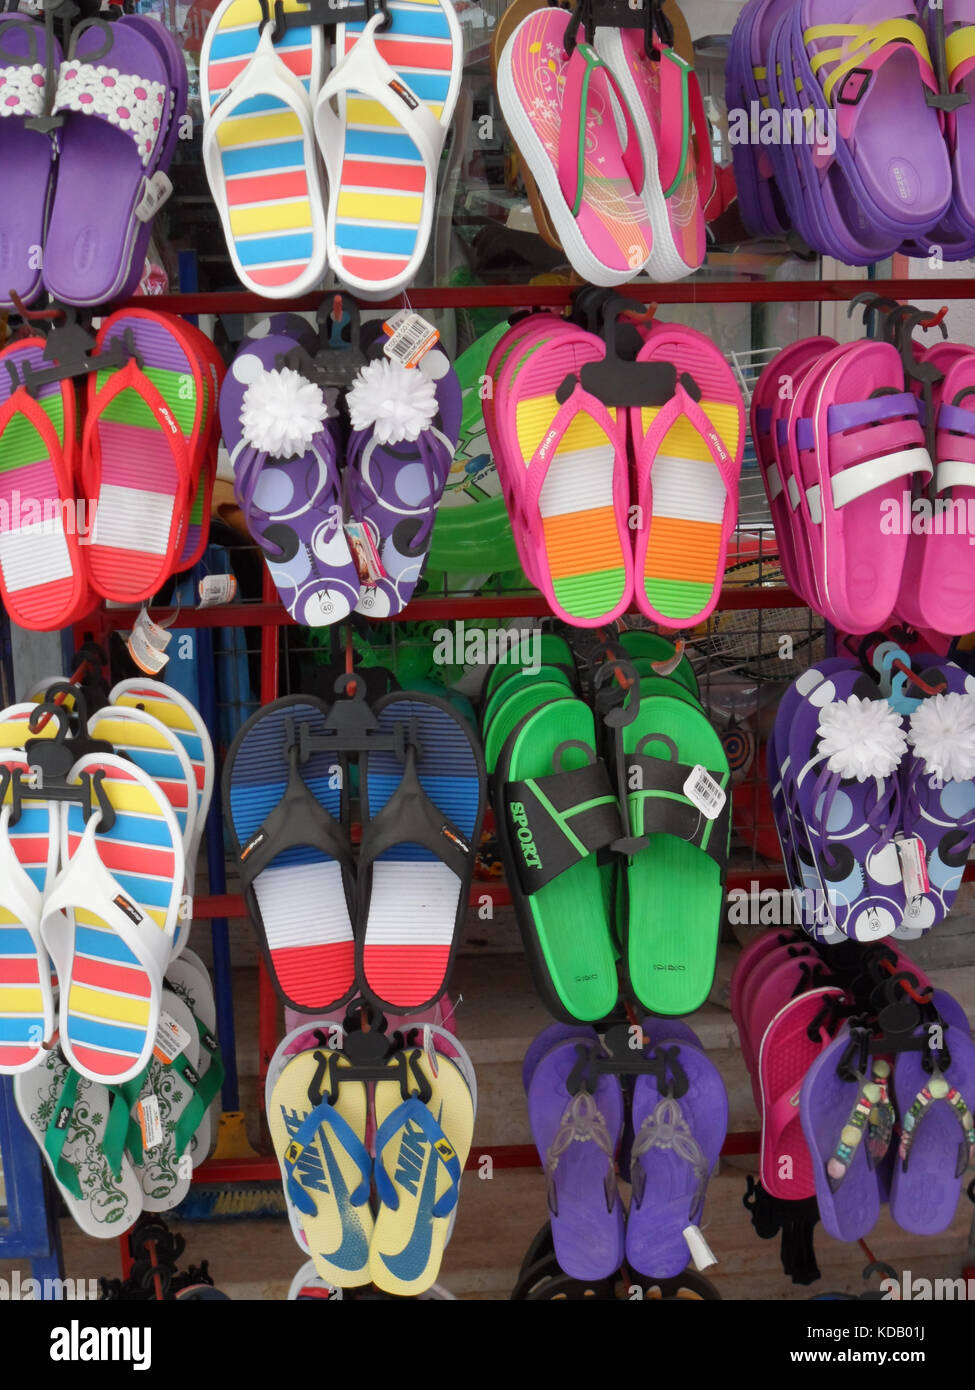 A market stall display of colourful flip flop sandals for sale, Marmaris, Turkey - Stock Image